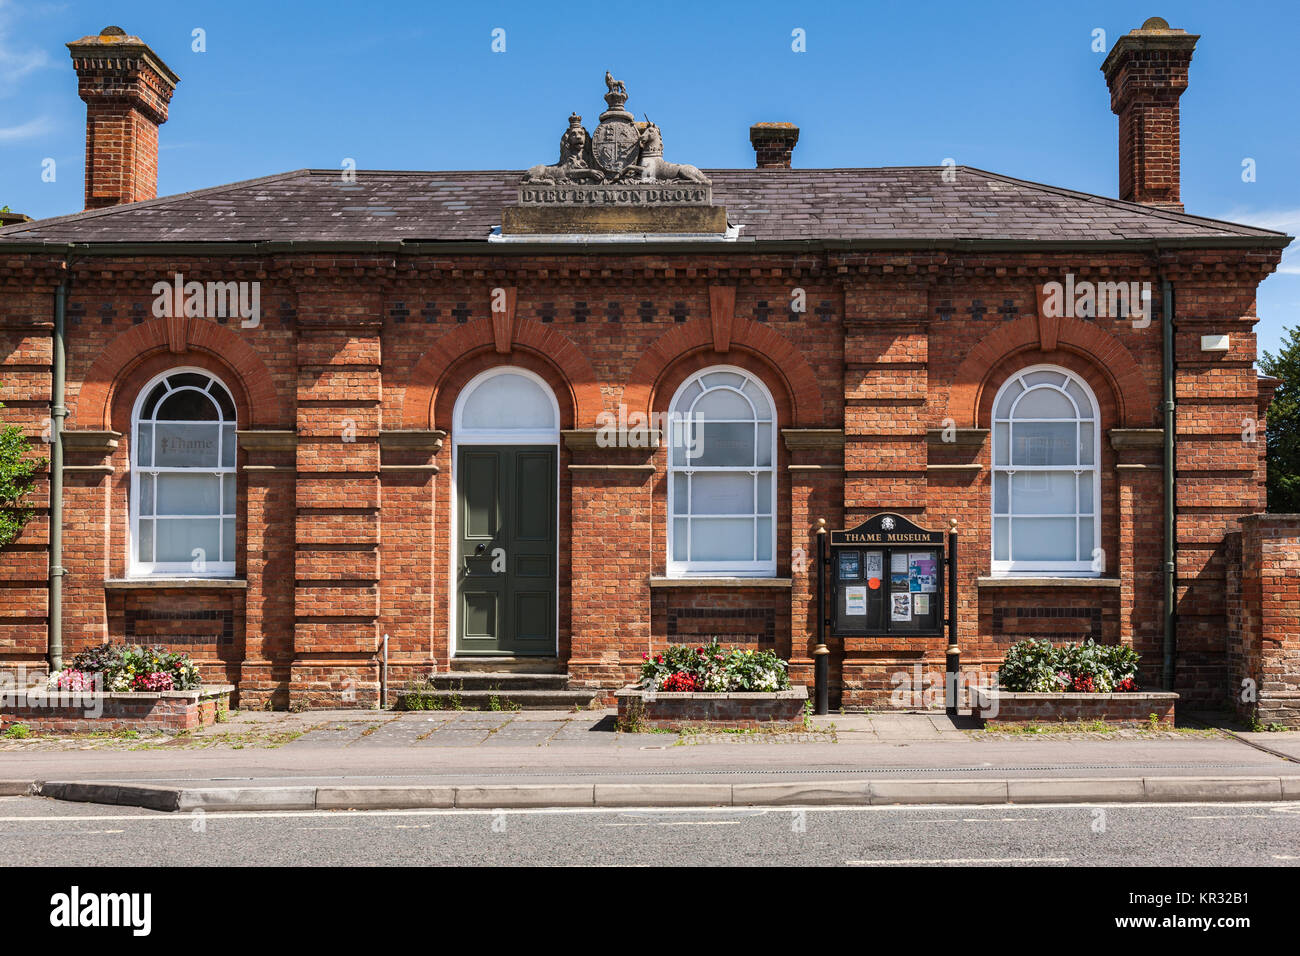 Exterior of the front of the Thame museum in Thame Oxfordshire UK - Stock Image